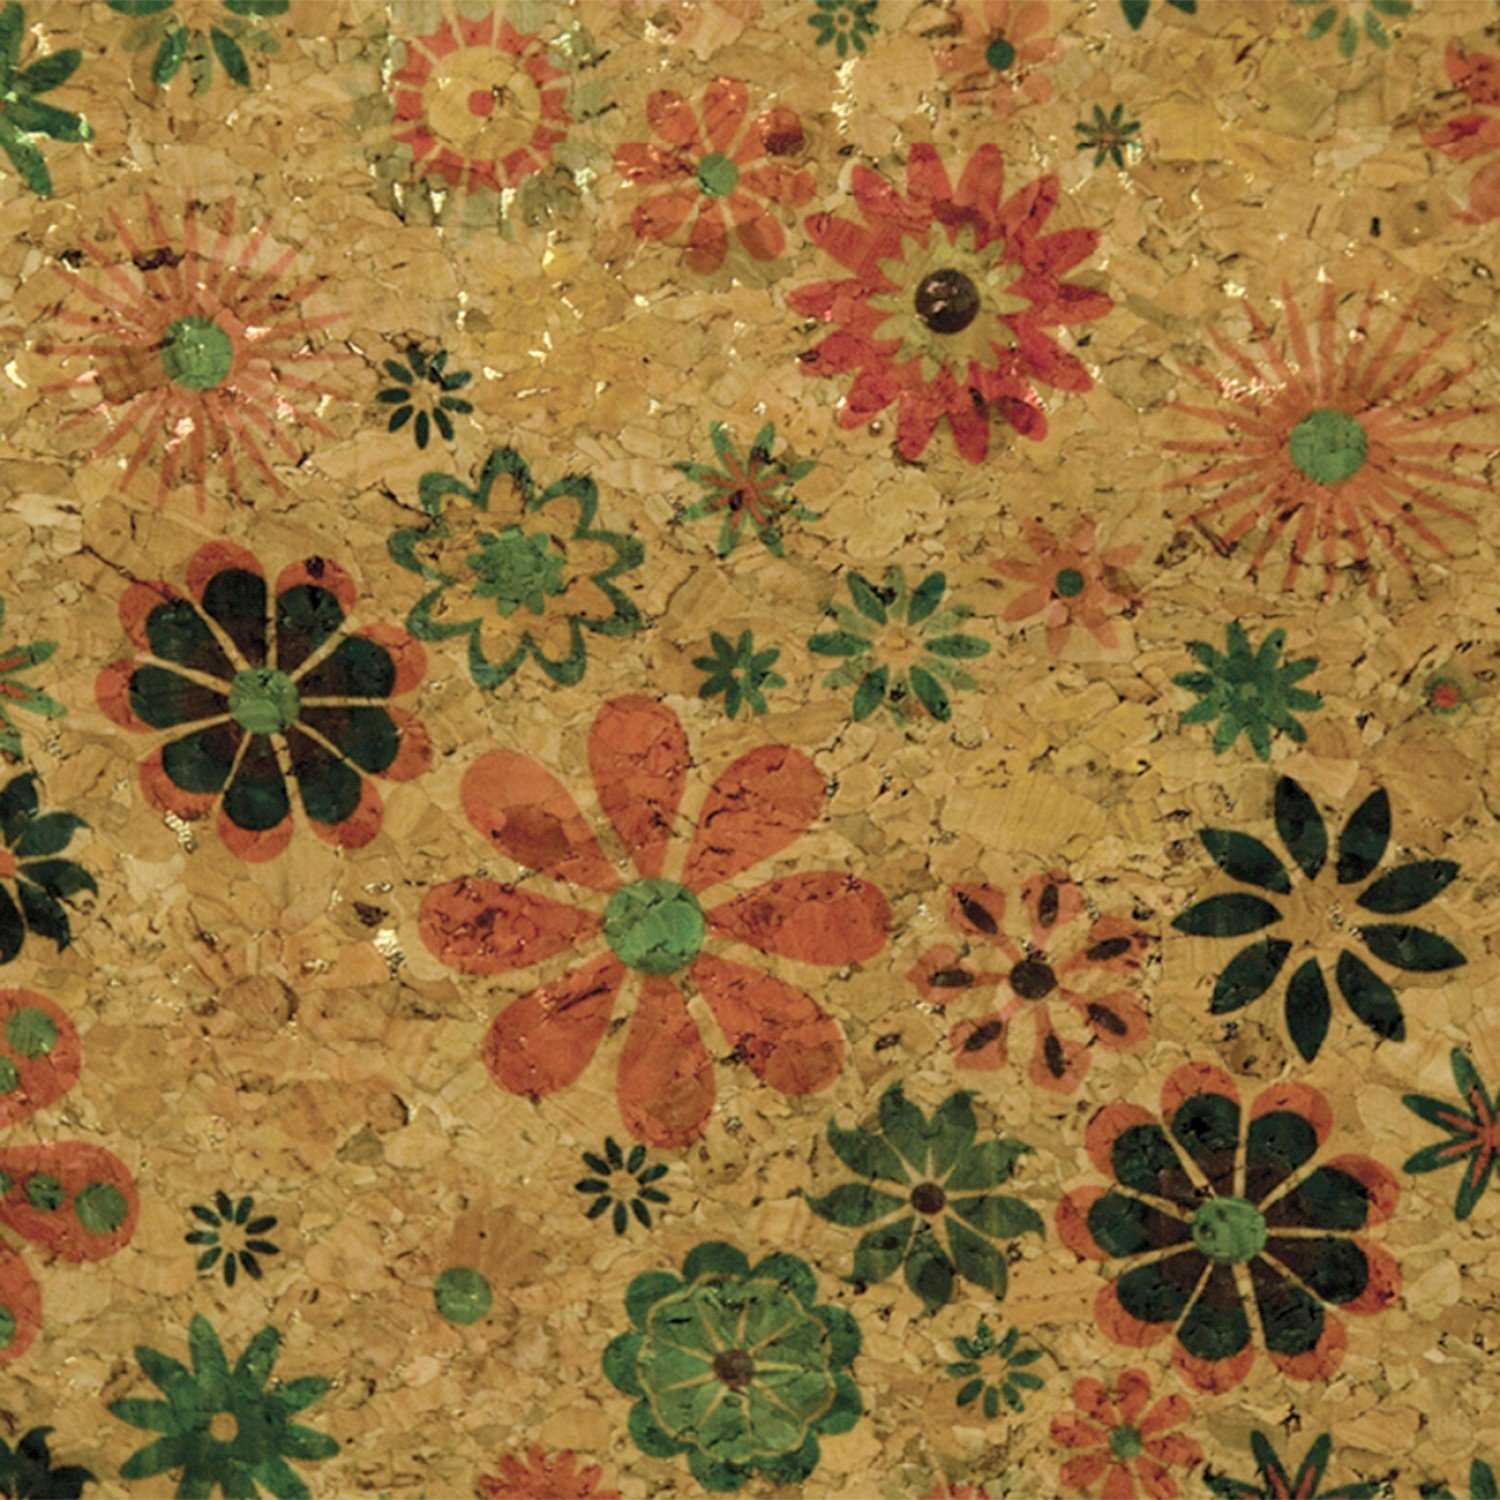 Cork Fabric Natural with Groovy Flowers